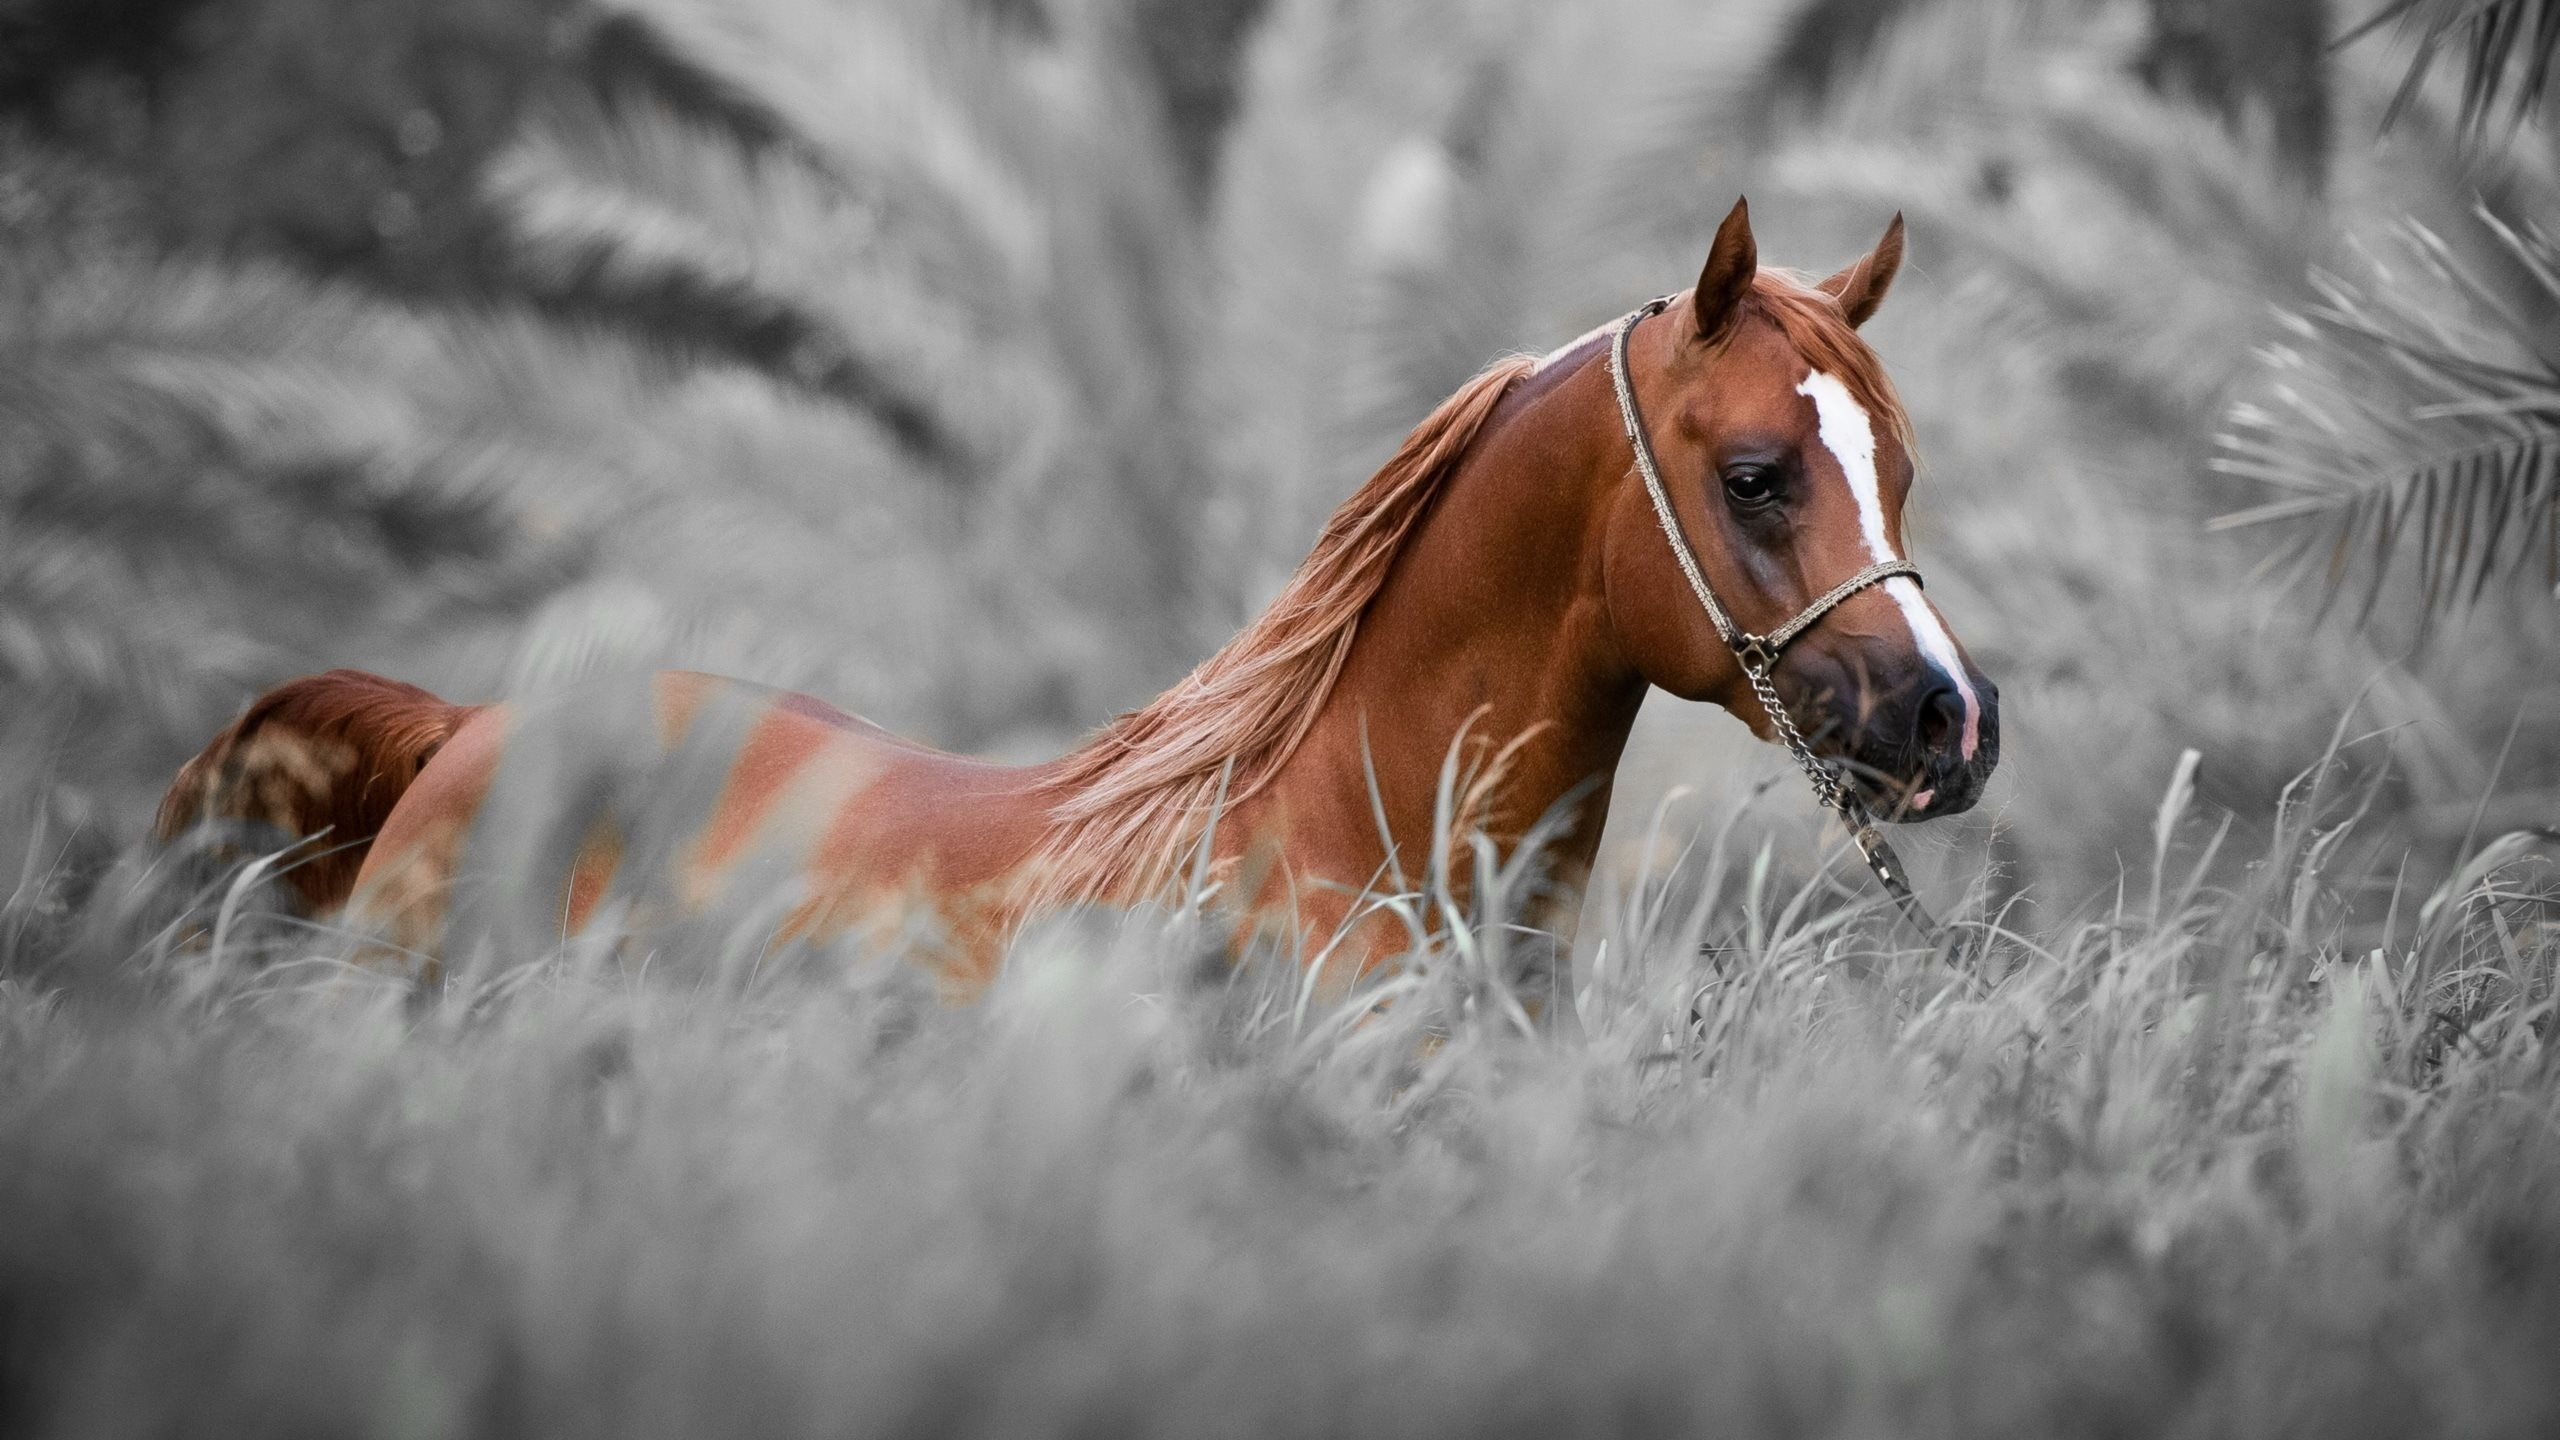 horse wallpaper hd | horse wallpapers hd | Horse wallpaper | Pinterest | Horse wallpaper, Horses ...